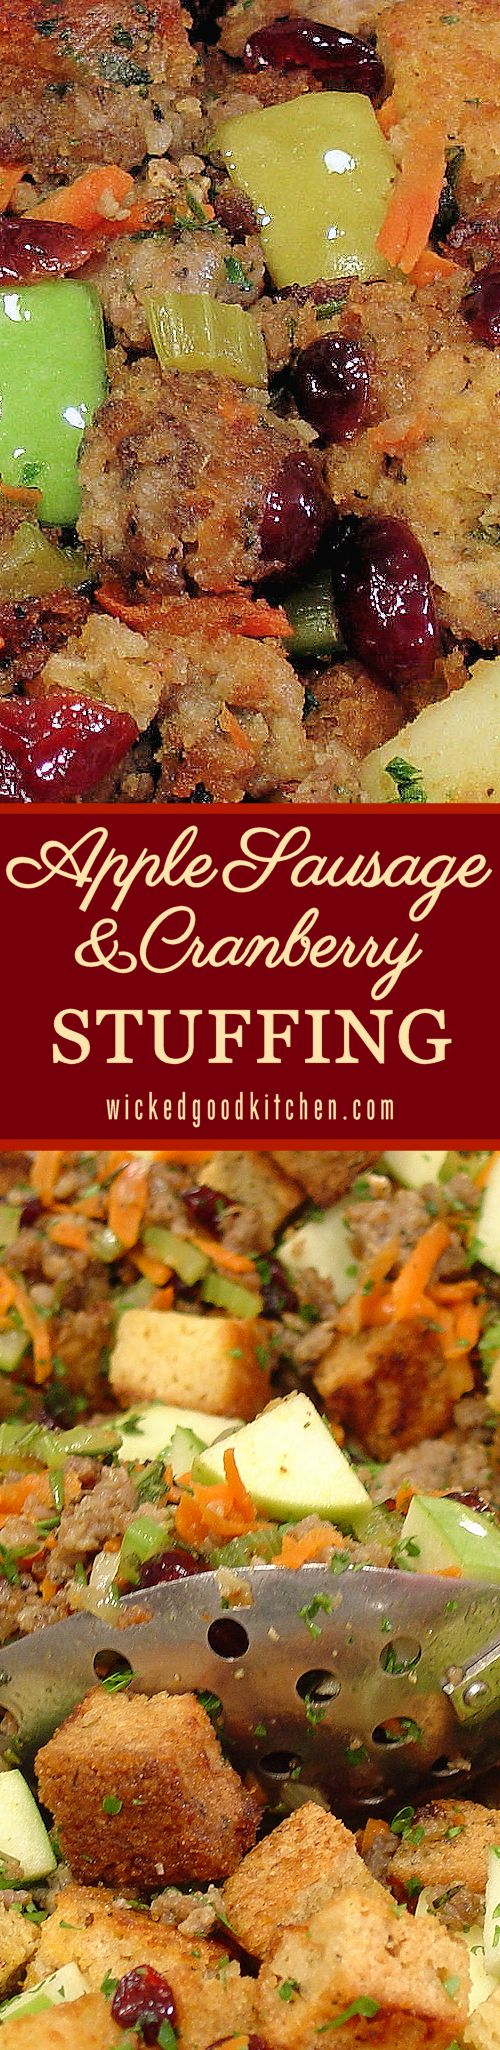 Apple Sausage and Cranberry Stuffing ~ Fresh, savory, tart, sweet and festive, the perfect stuffing for #Thanksgiving or #Christmas #Holidays! Featured at the Allrecipes.com site with a 5-star rating and over 2,000 reviews. It will rock your ever-loving turkey stuffing world! | diy gluten free option recipe